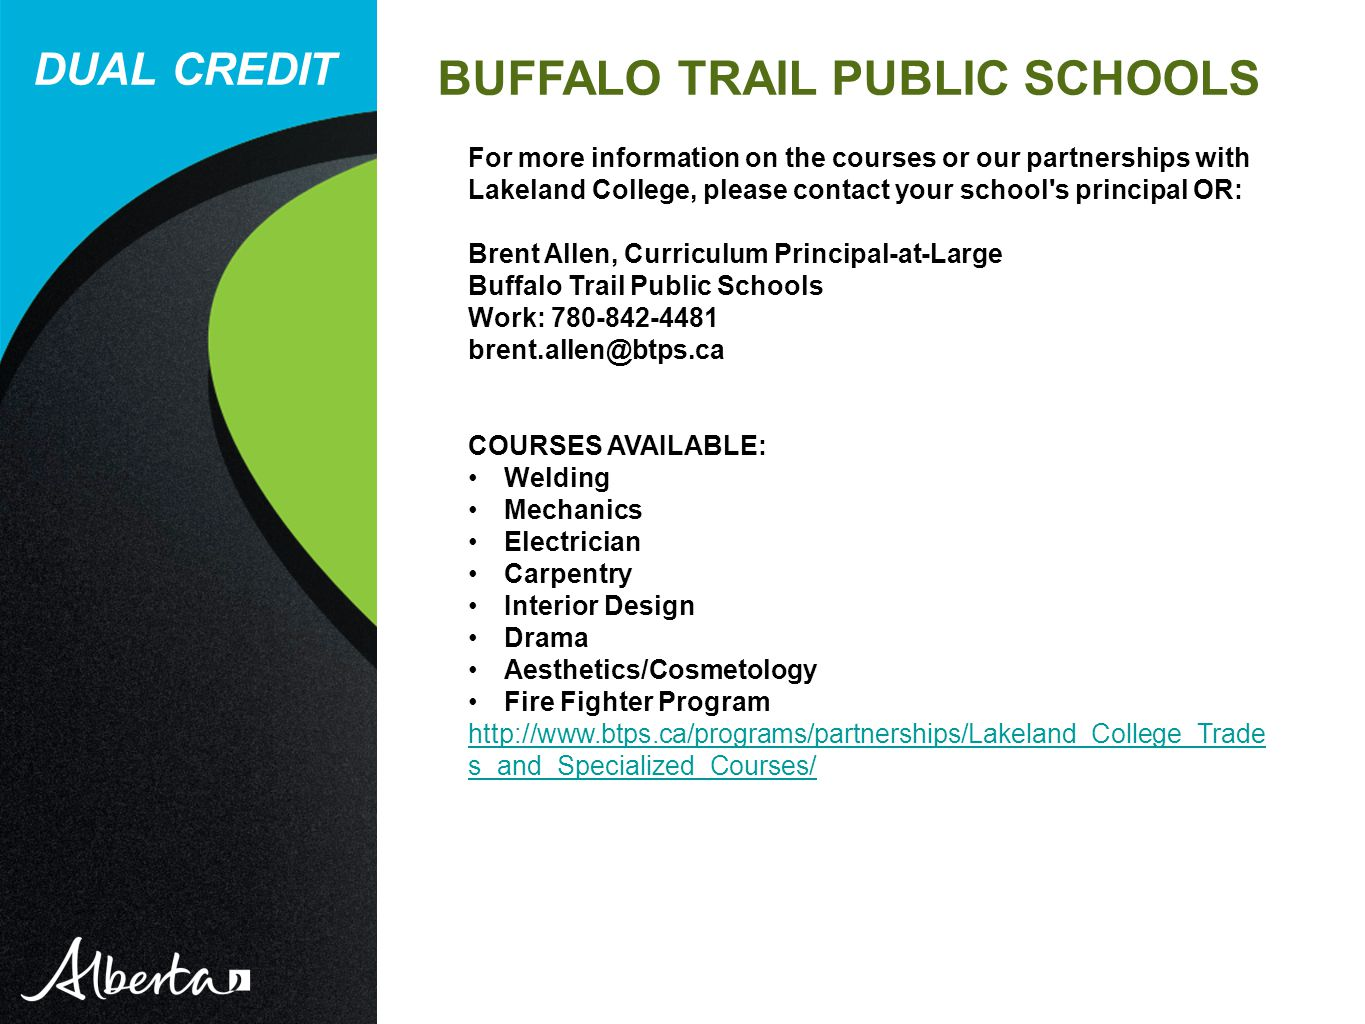 DUAL CREDIT BUFFALO TRAIL PUBLIC SCHOOLS For more information on the courses or our partnerships with Lakeland College, please contact your school s principal OR: Brent Allen, Curriculum Principal-at-Large Buffalo Trail Public Schools Work: COURSES AVAILABLE: Welding Mechanics Electrician Carpentry Interior Design Drama Aesthetics/Cosmetology Fire Fighter Program   s_and_Specialized_Courses/